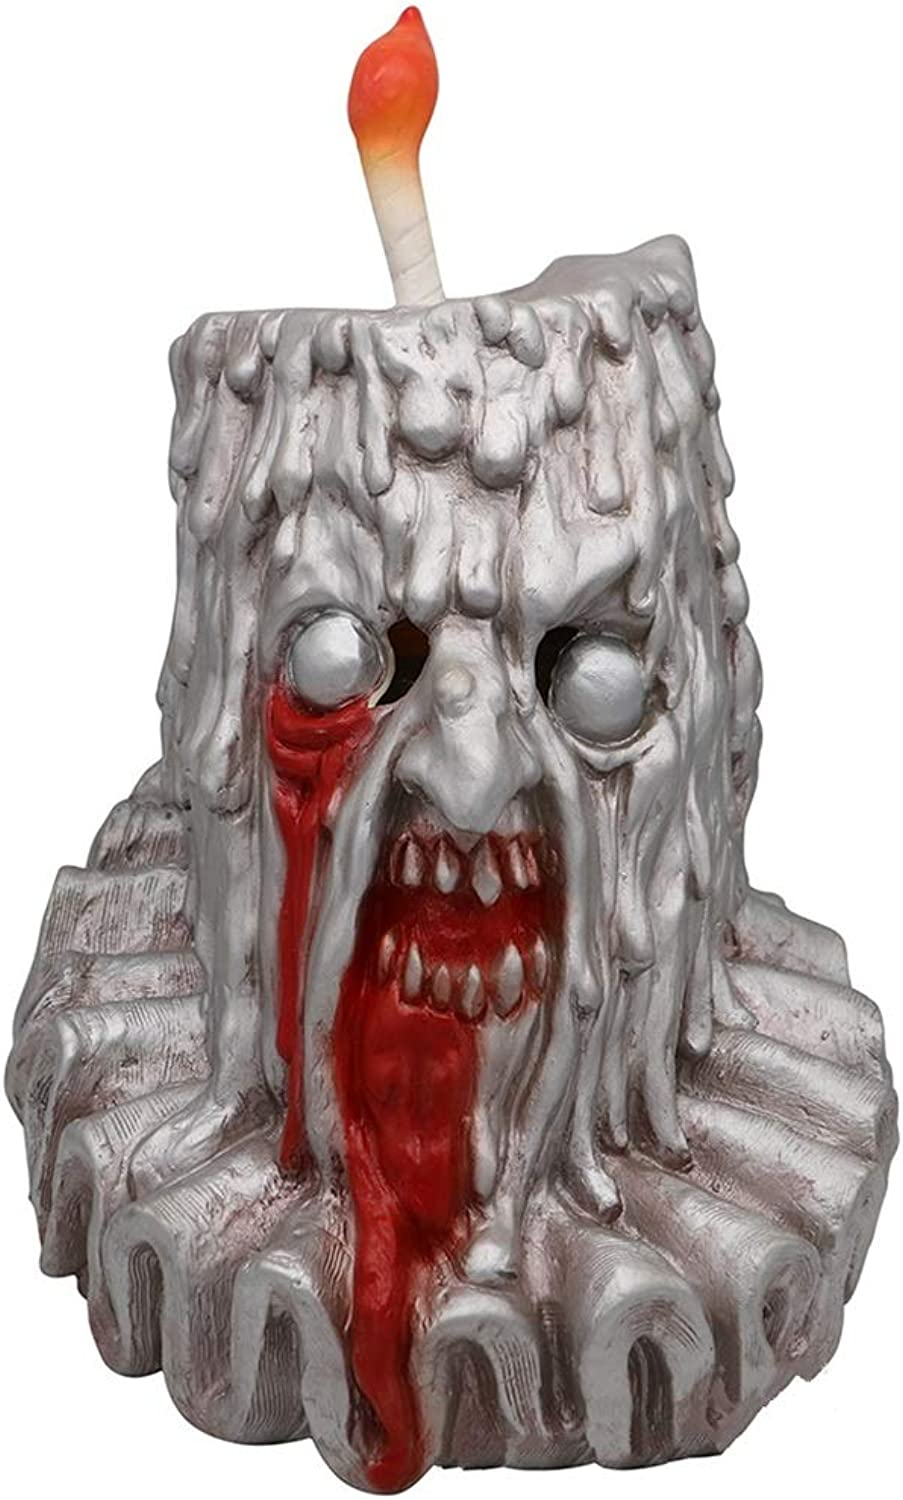 GXDHOME Latex Head Mask,Halloween Candle Man Skull Horror Ghost Zombie Costume Scary Devil Bloody Creepy Fancy Dress